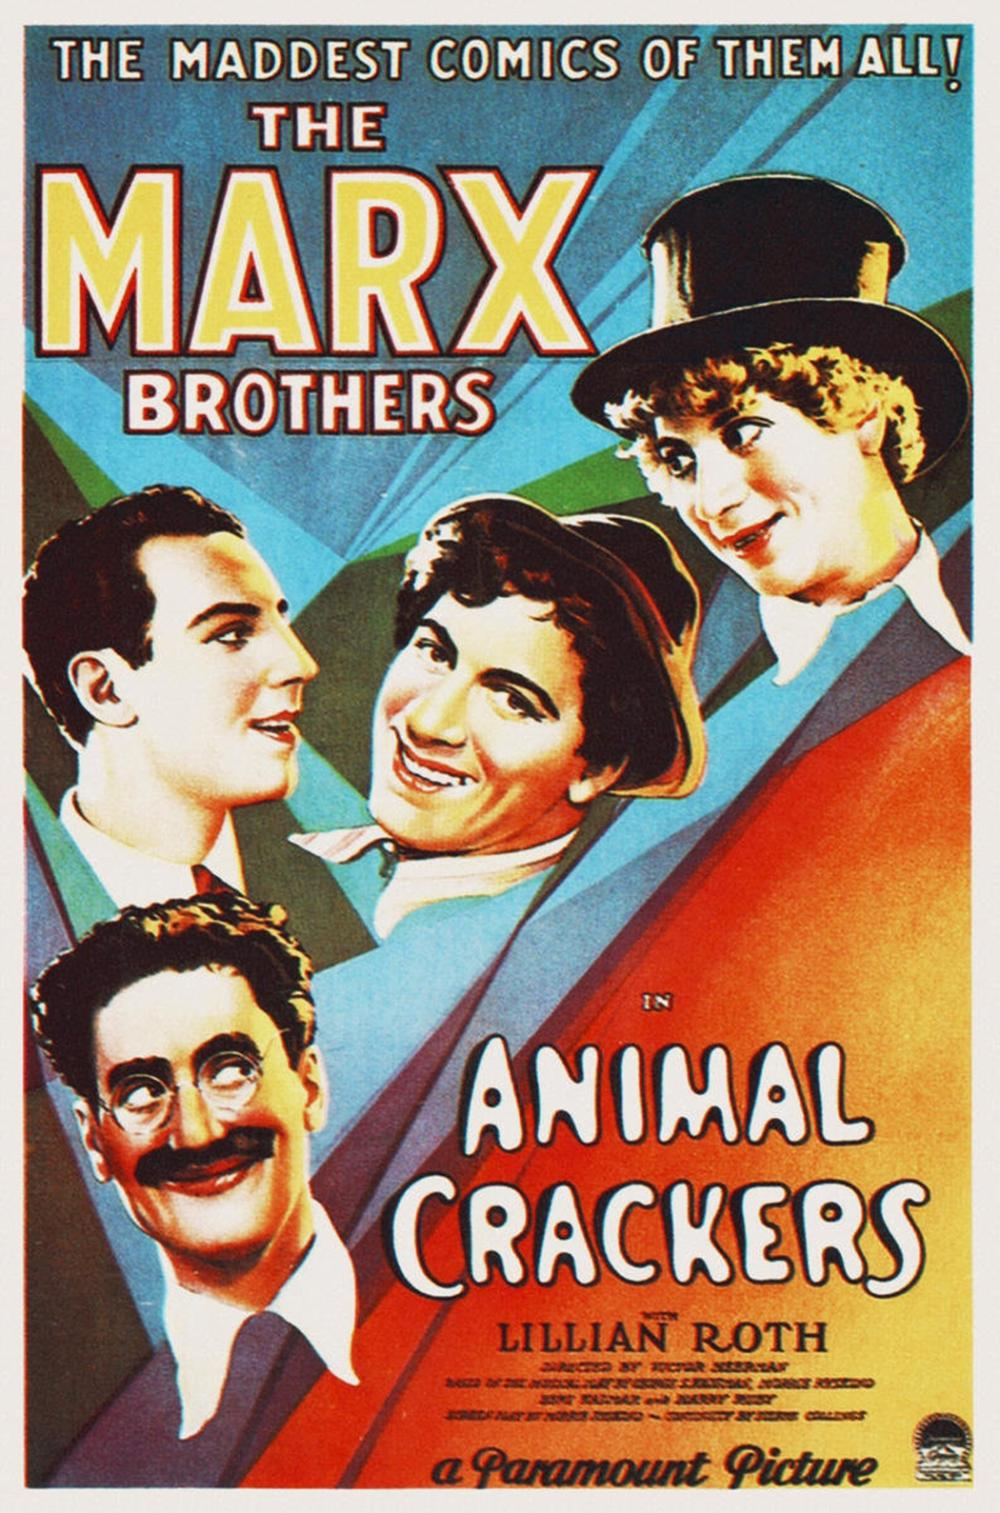 HOLLYWOOD PHOTO ARCHIVE MARX BROTHERS - ANIMAL CRACKERS 02